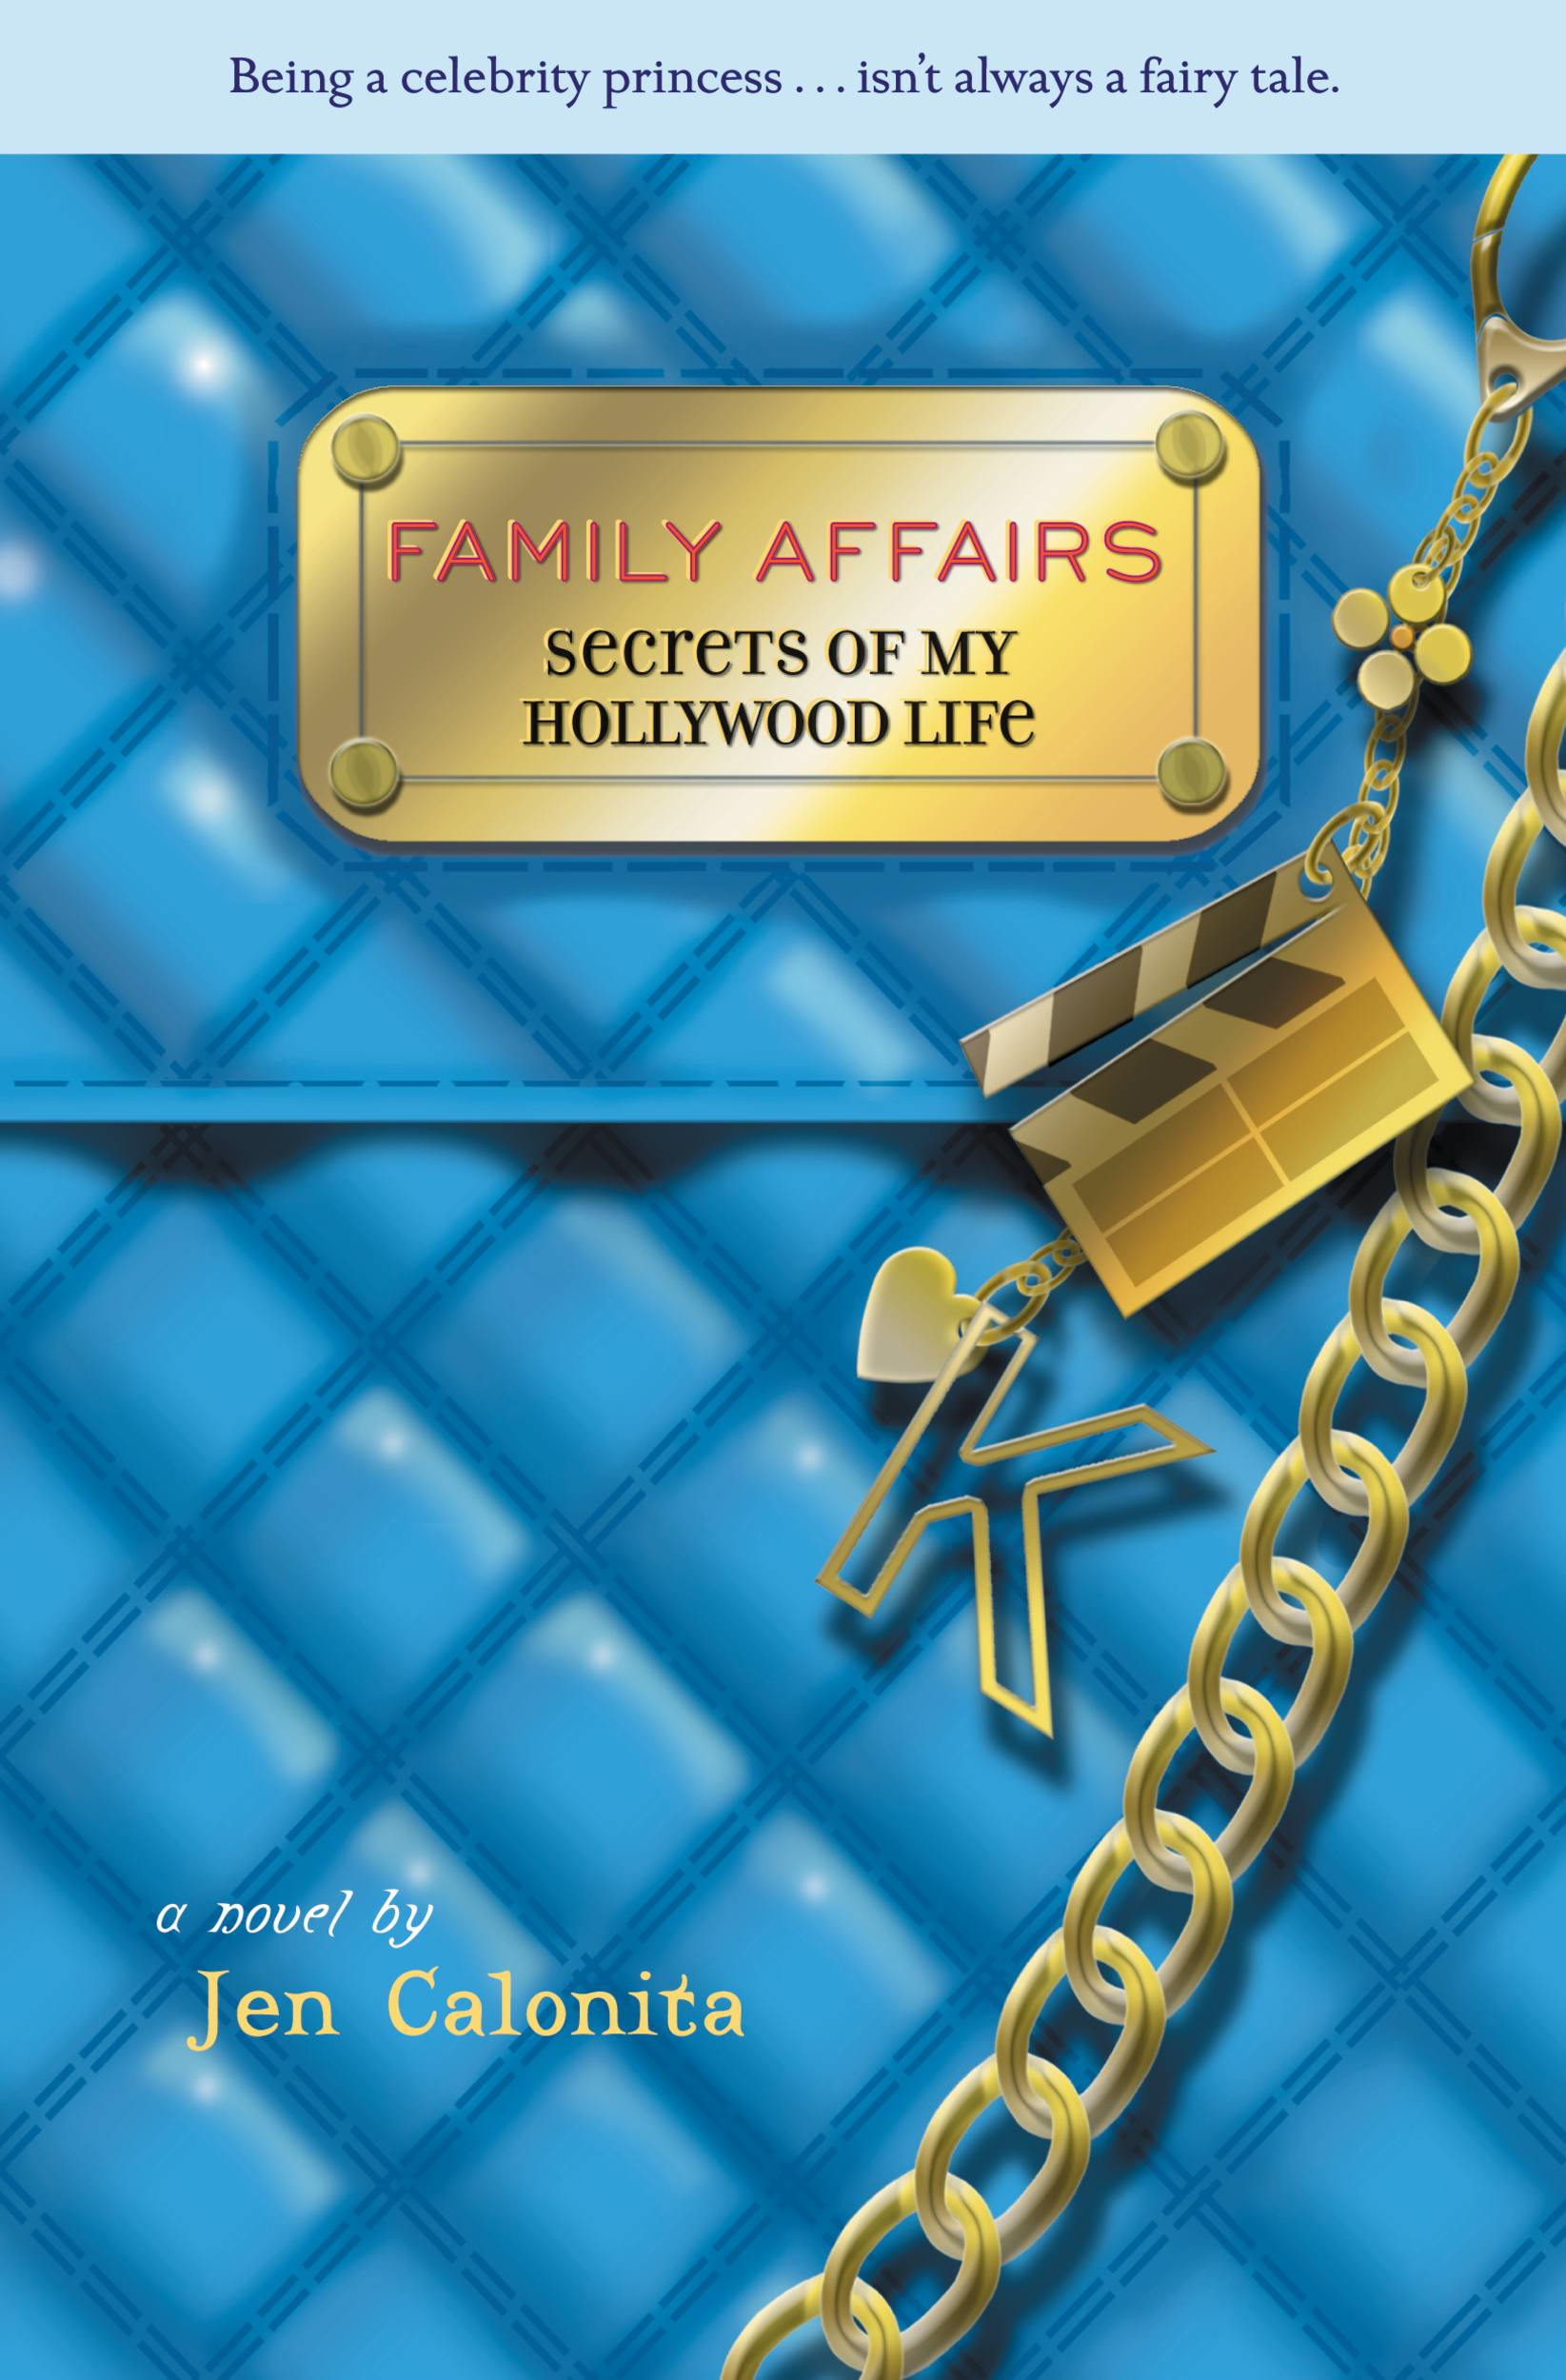 Family Affairs By: Jen Calonita